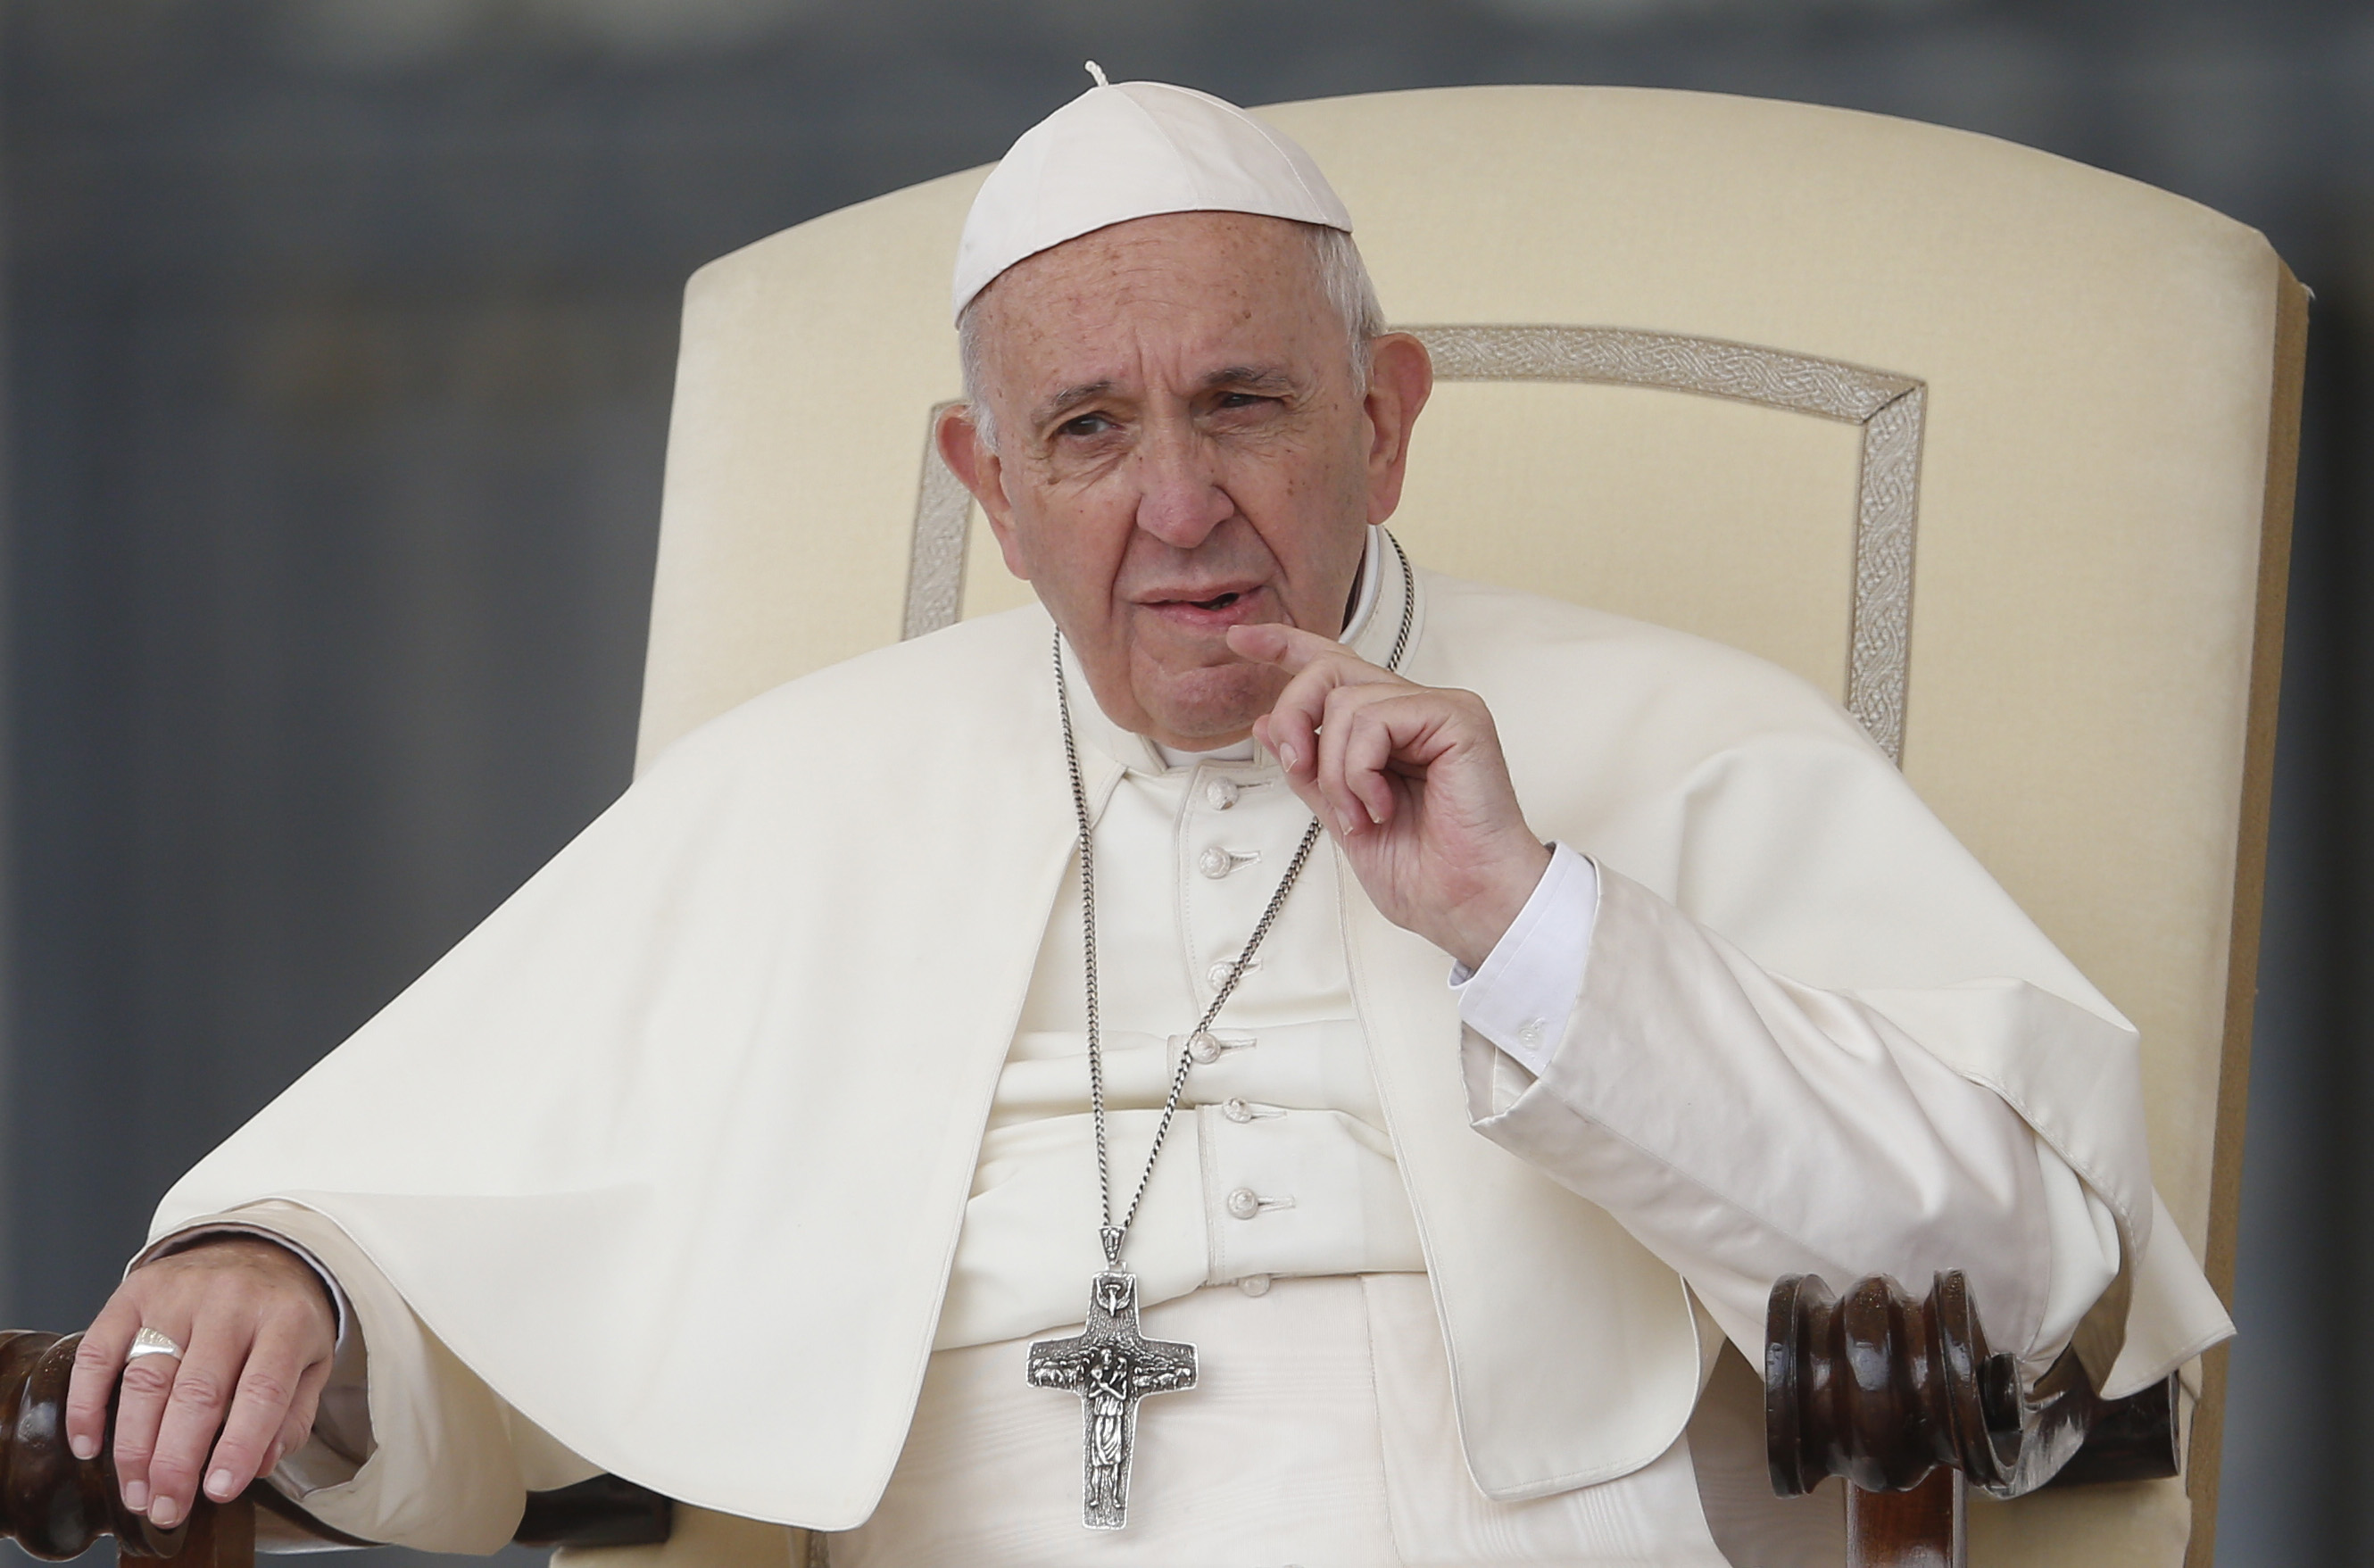 Pope Francis looks on during his general audience in St. Peter's Square at the Vatican Oct. 17. (CNS photo/Paul Haring) See POPE-AUDIENCE-KILL Oct. 17, 2018.